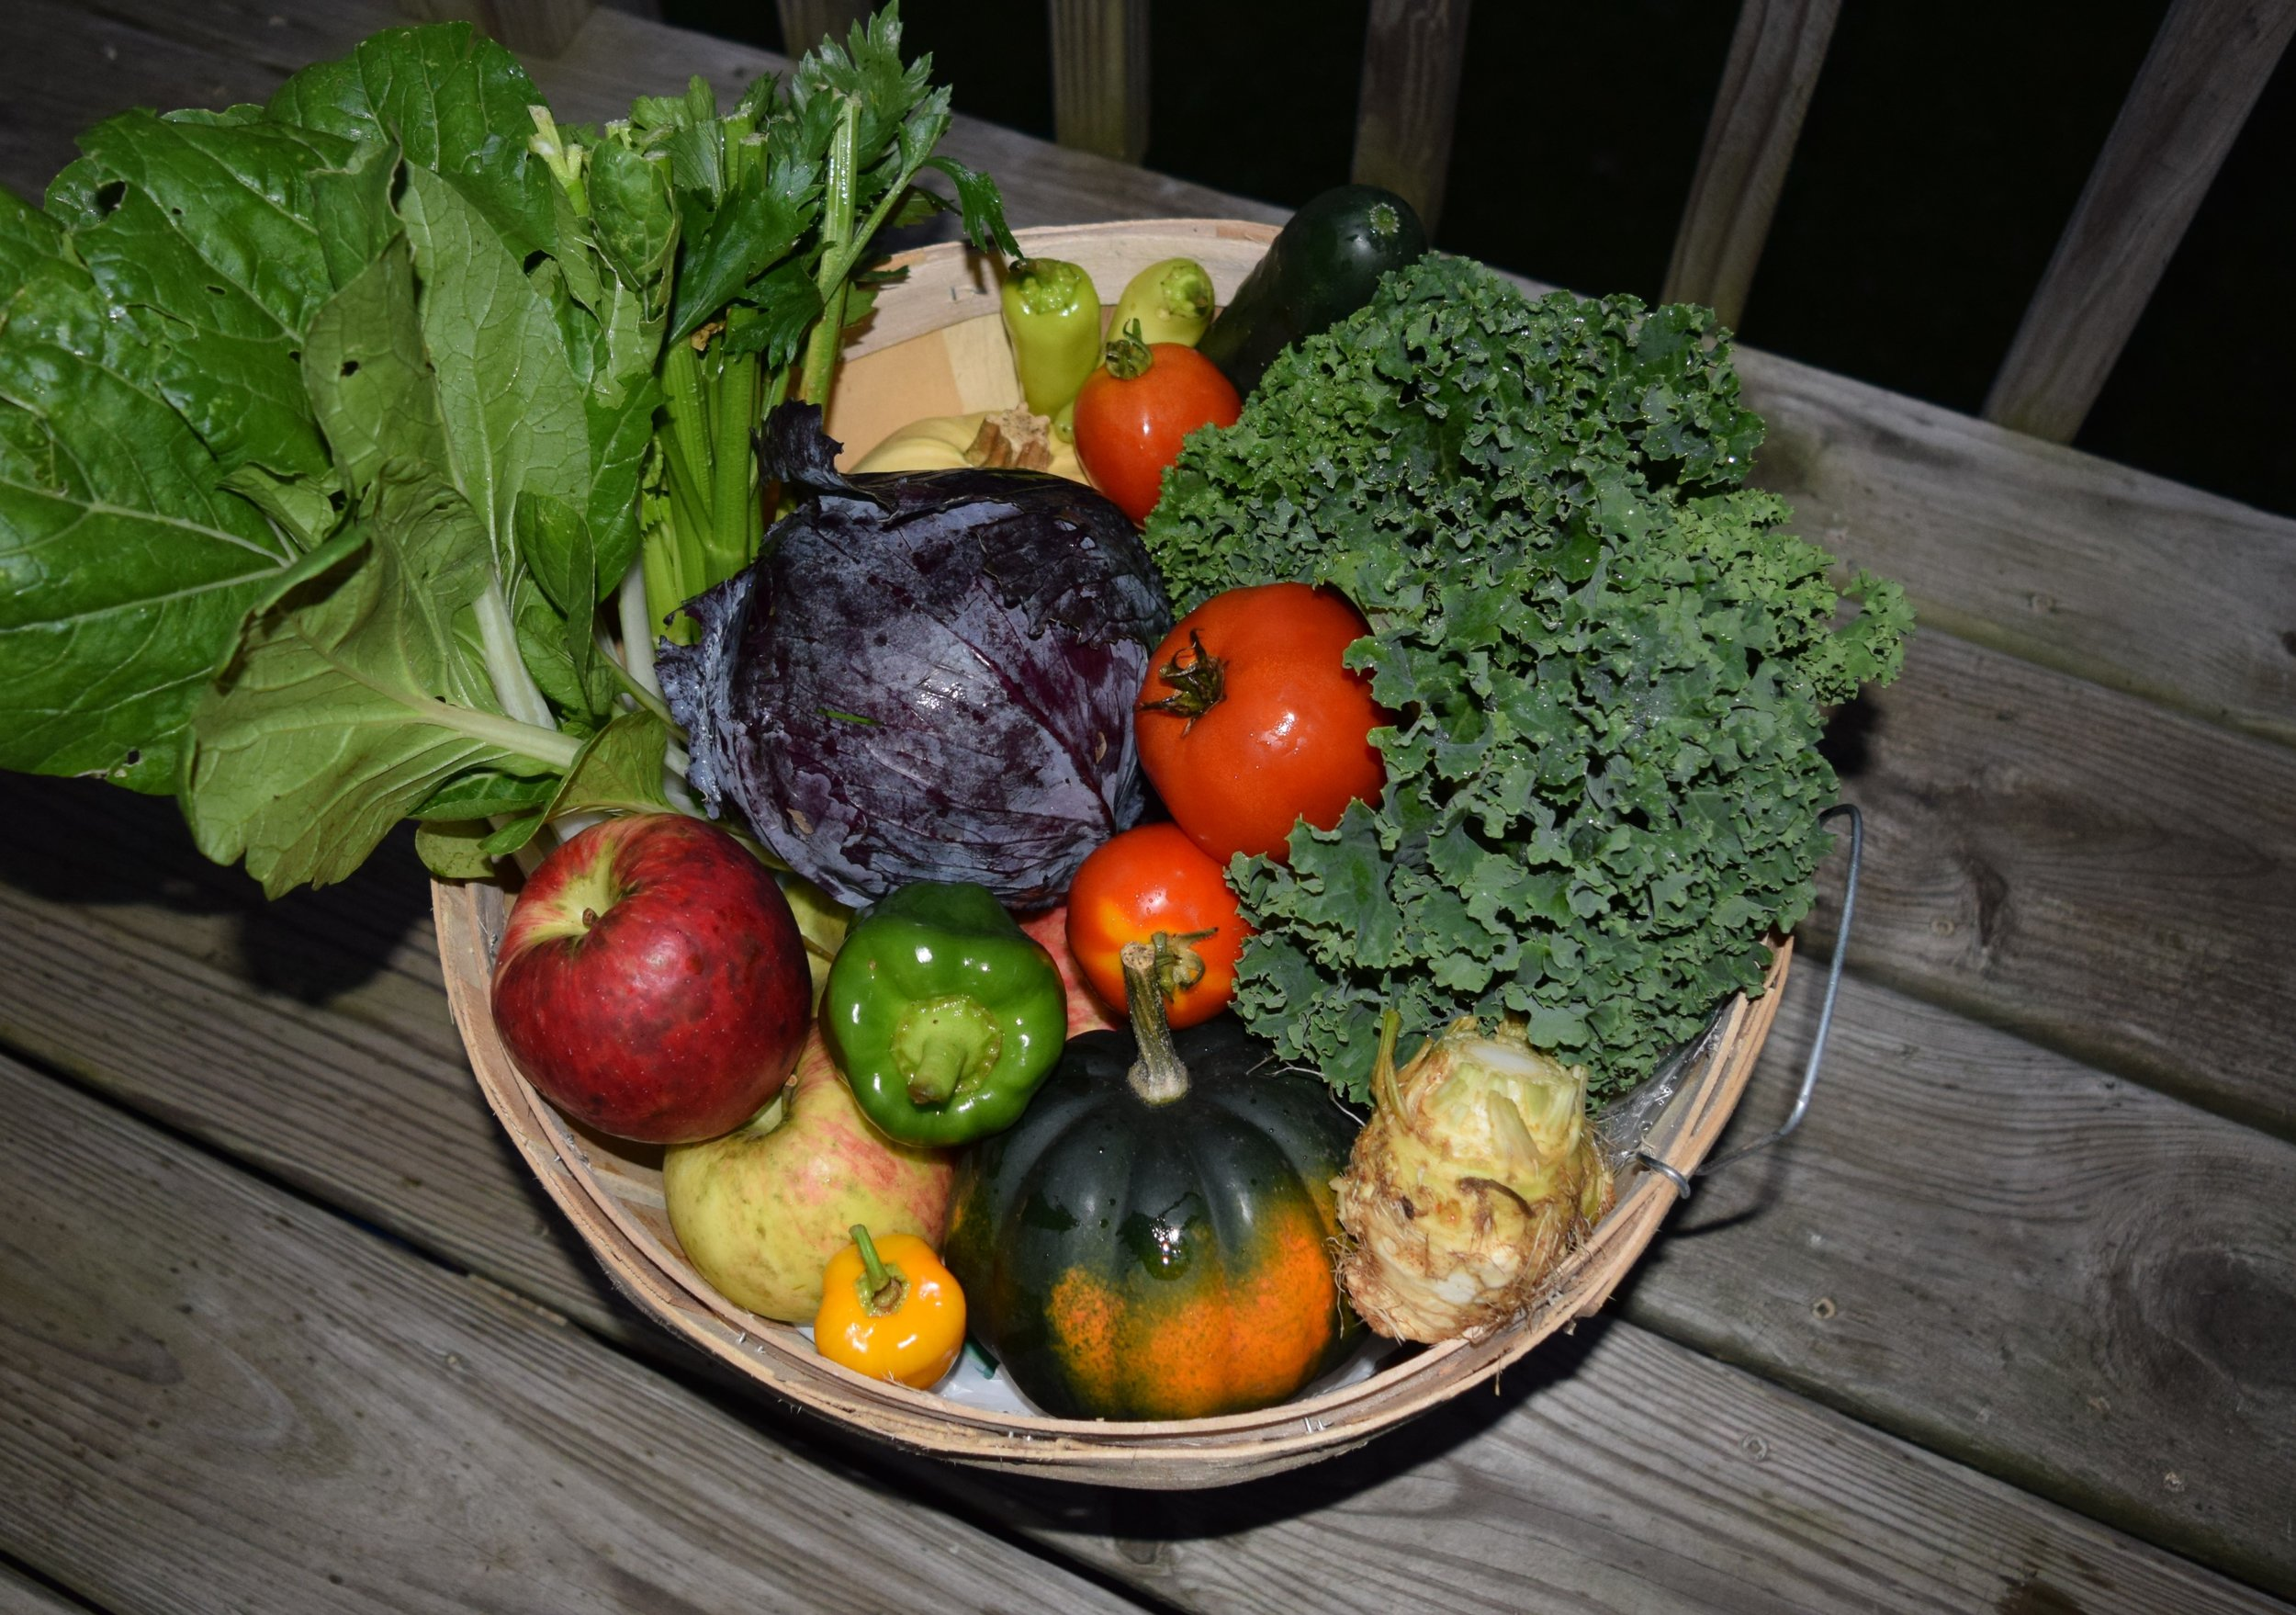 sample of weekly csa share box contents